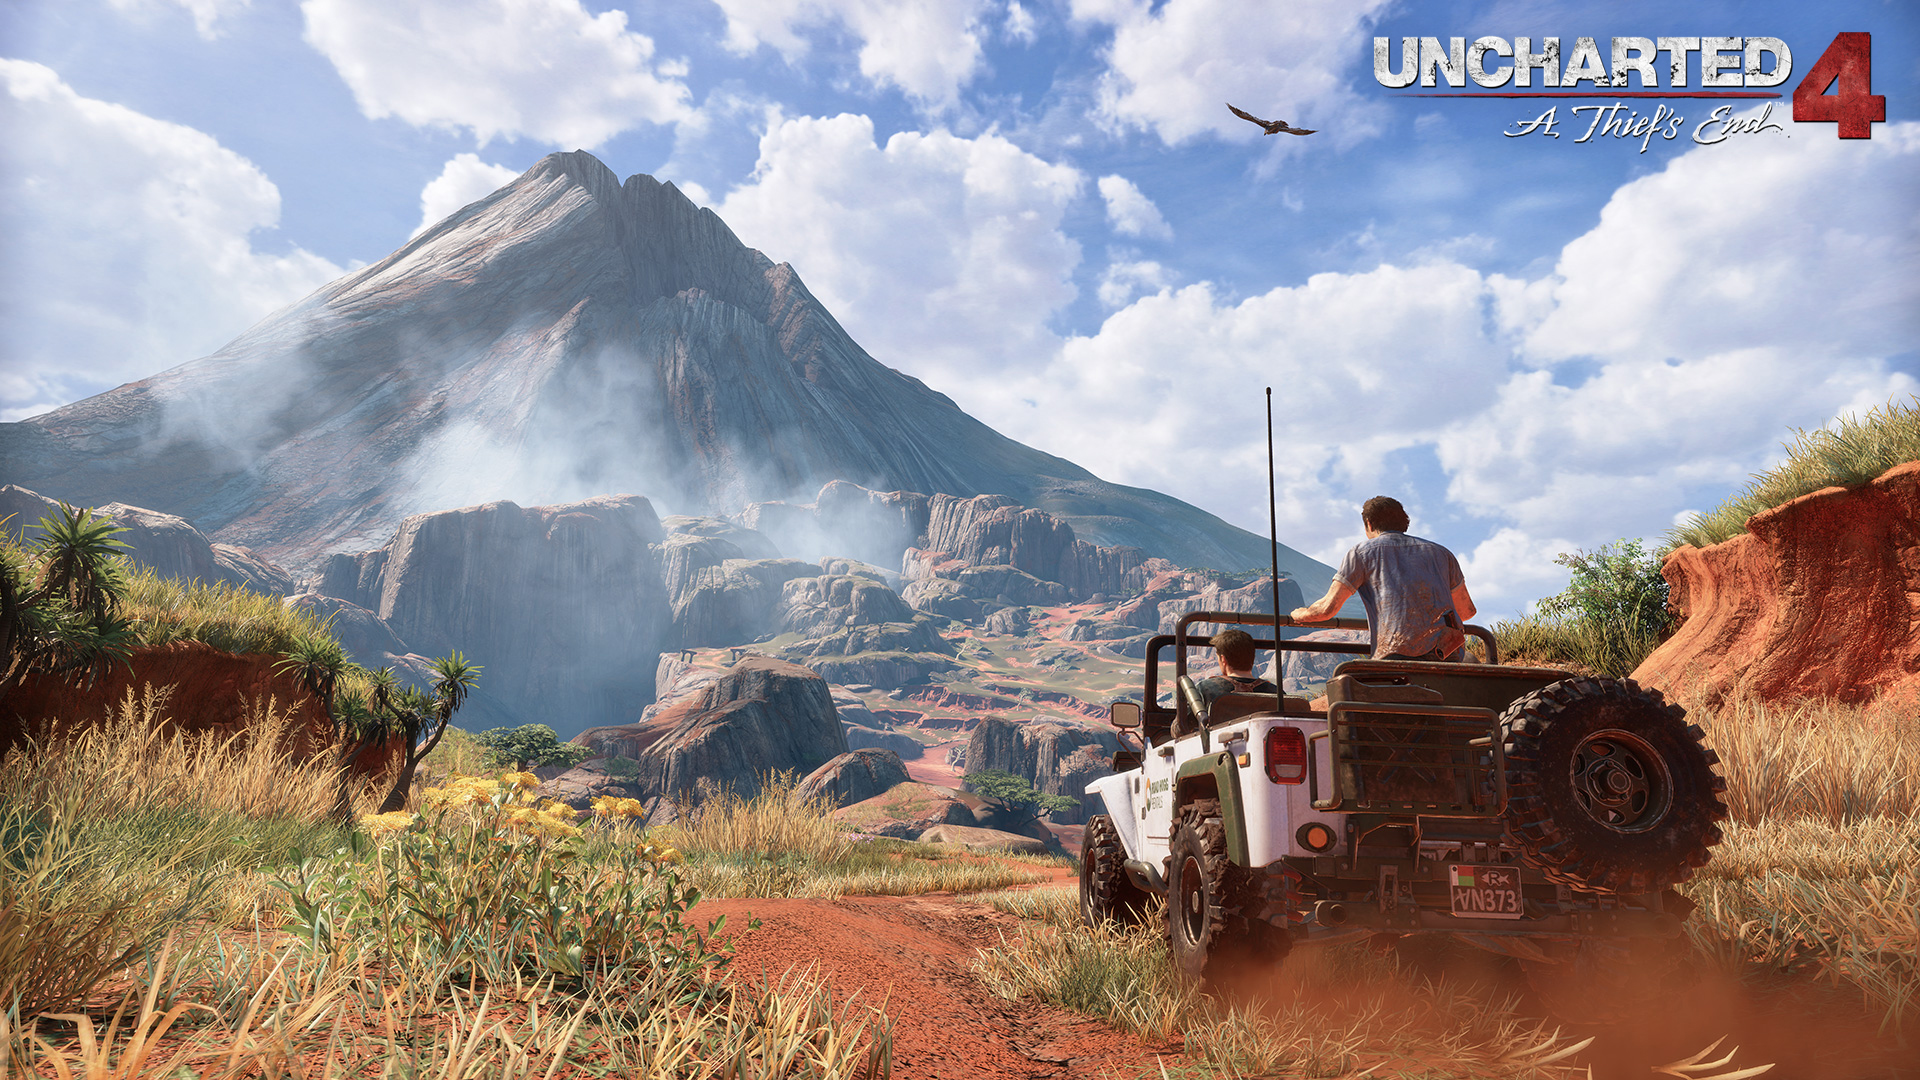 Uncharted 4 Madagascar's volcano. Virtual background to use on Zoom, Microsoft Teams, Skype, Google Meet, WebEx or any other compatible app.